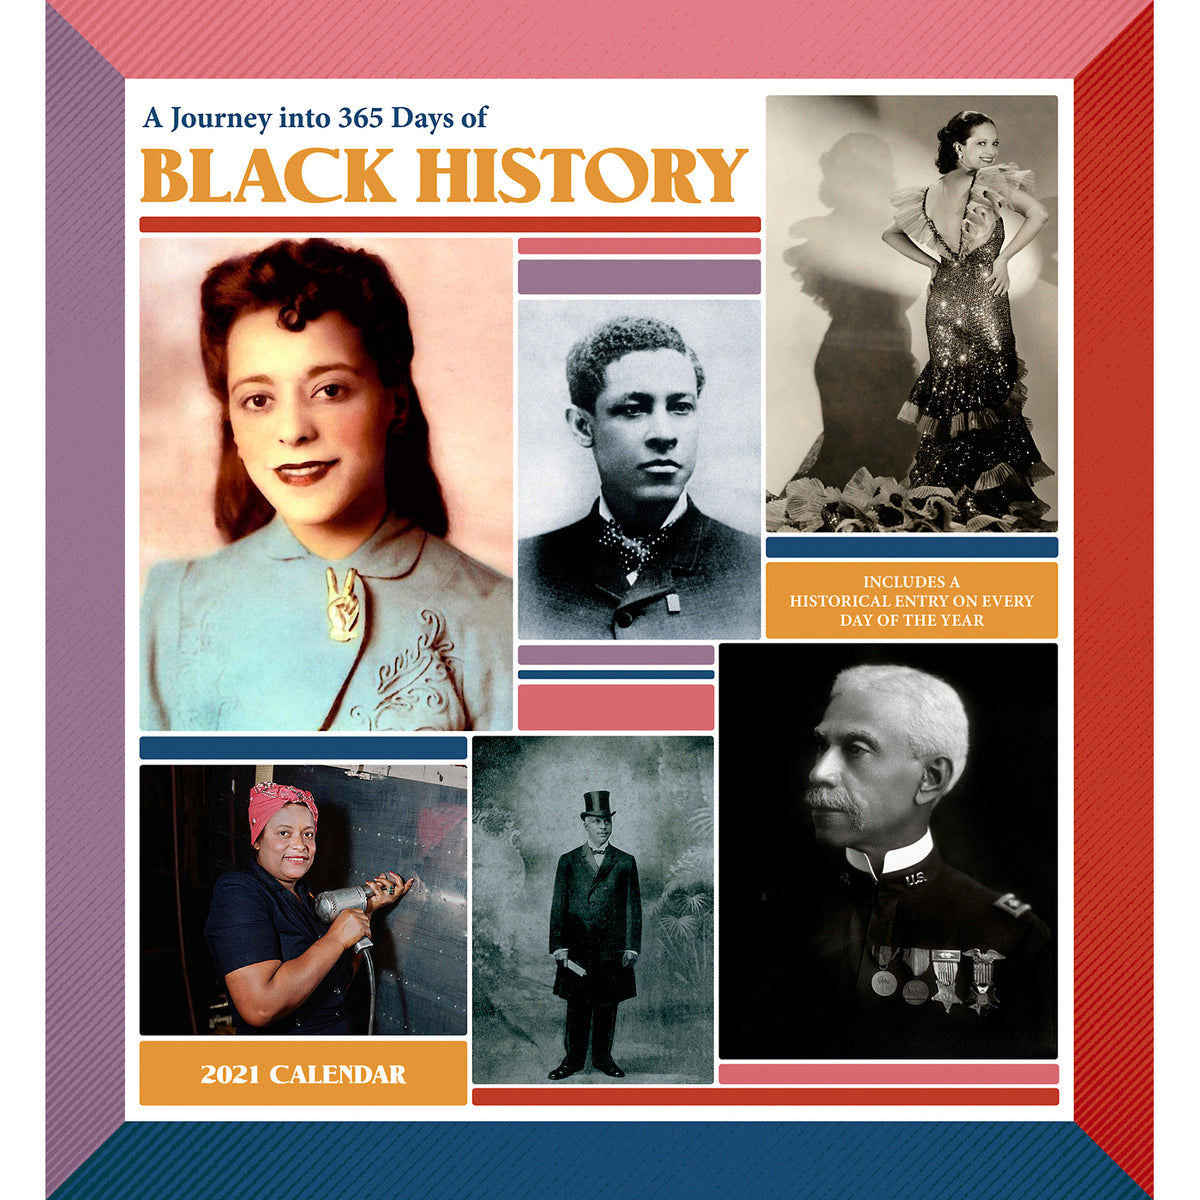 2021 Wall Calendar - A Journey into 365 Days of Black History